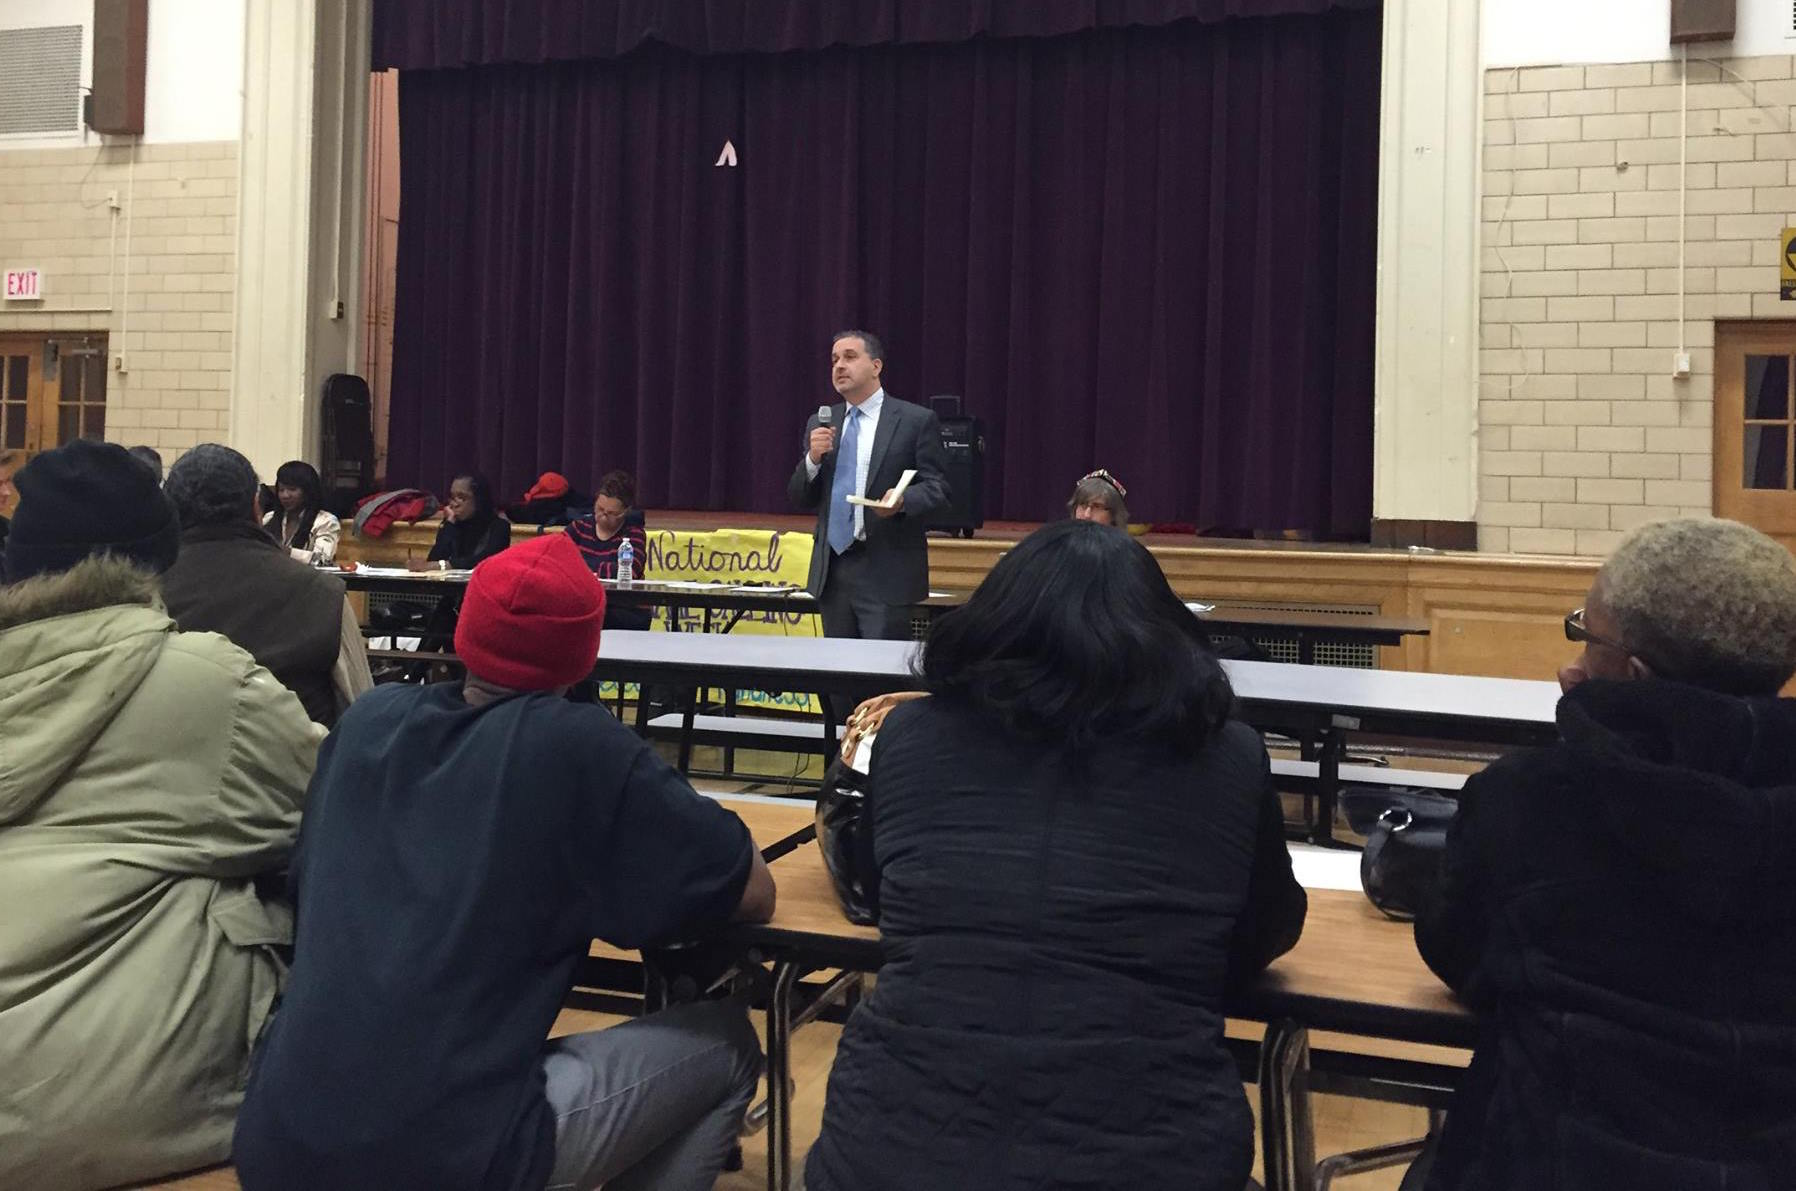 ANC Commissioner David Sheon presenting at the January 2015 ANC 4D meeting.